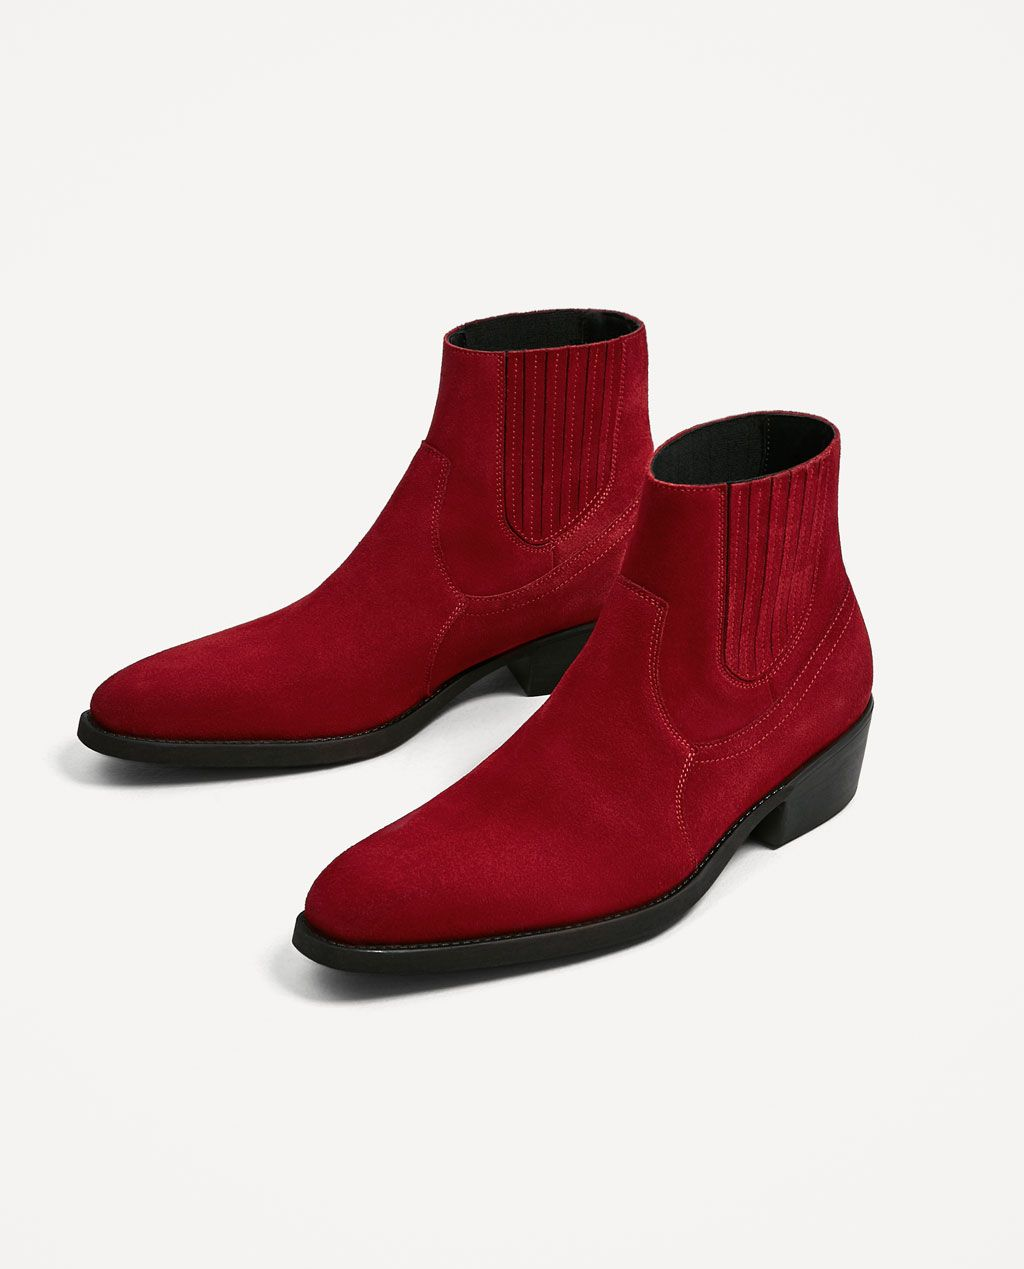 516cef1589a2d ZARA - MAN - RED LEATHER ANKLE BOOTS Botines Hombre